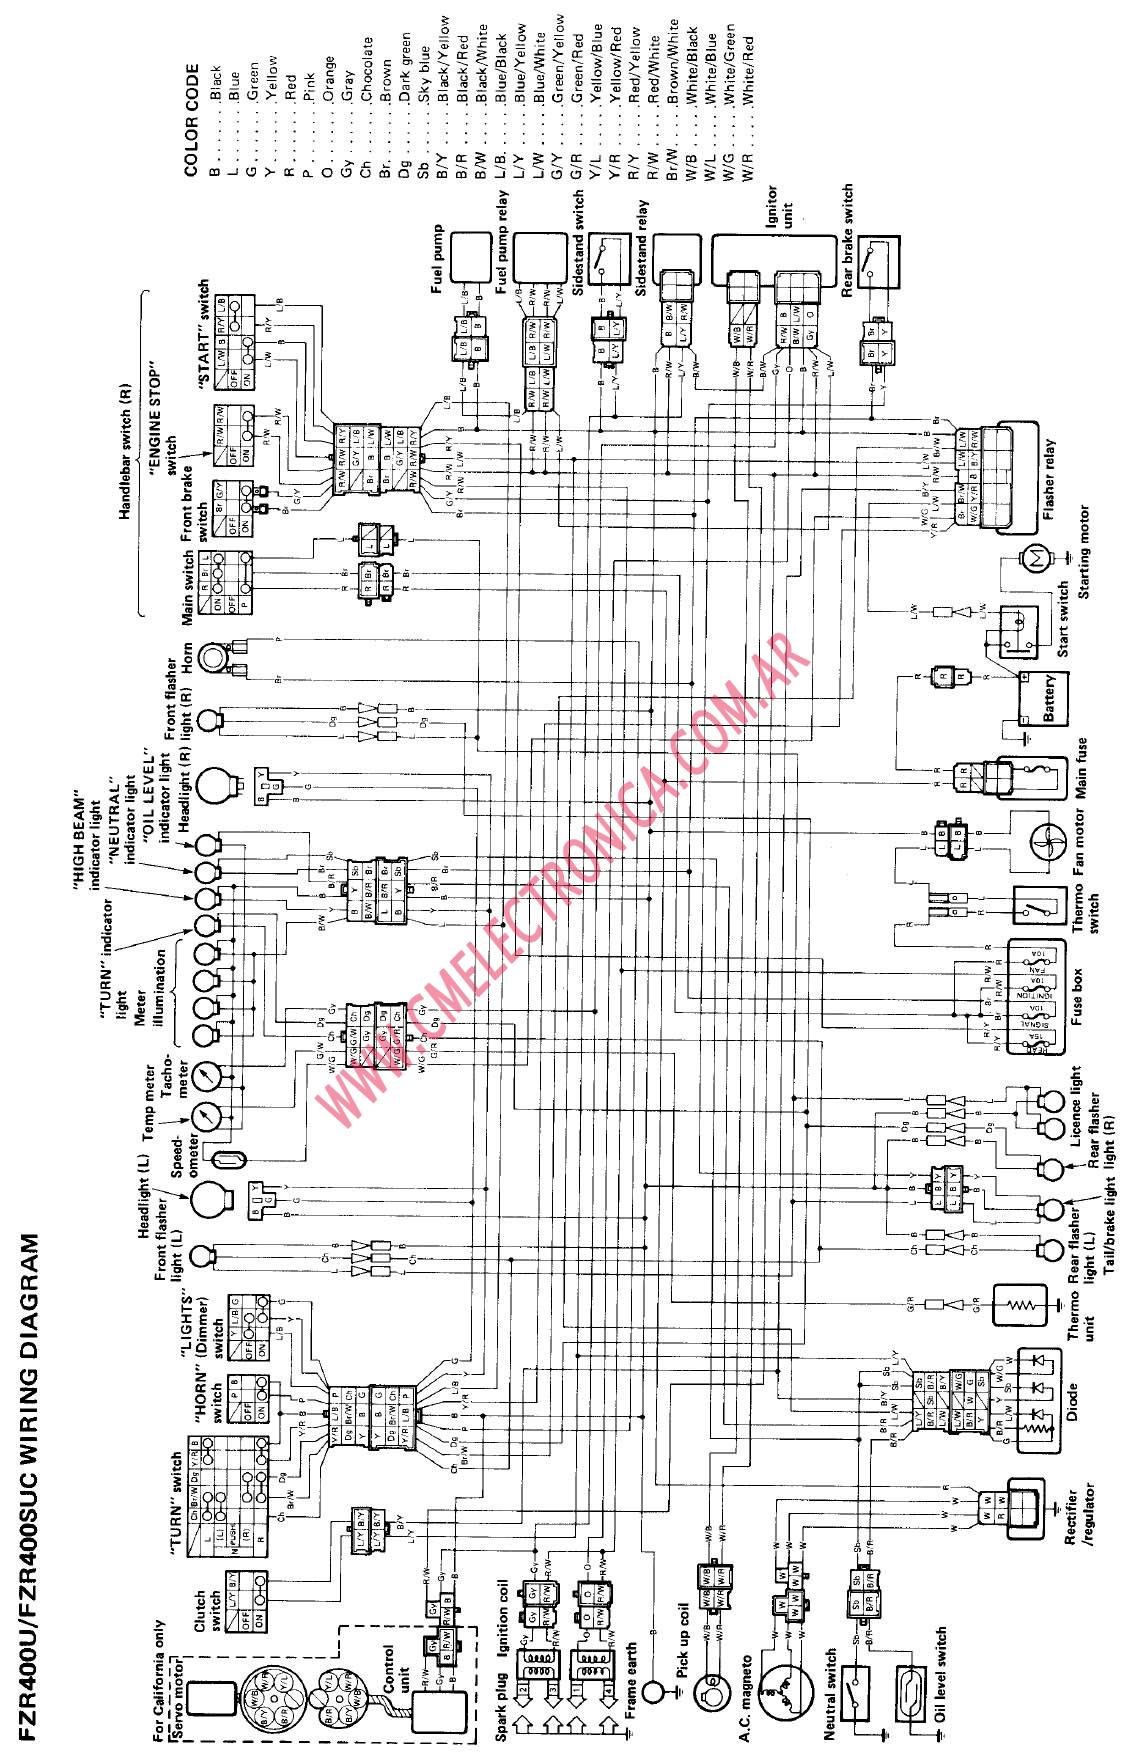 2004 Yfz 450 Wiring Diagram from i1.wp.com